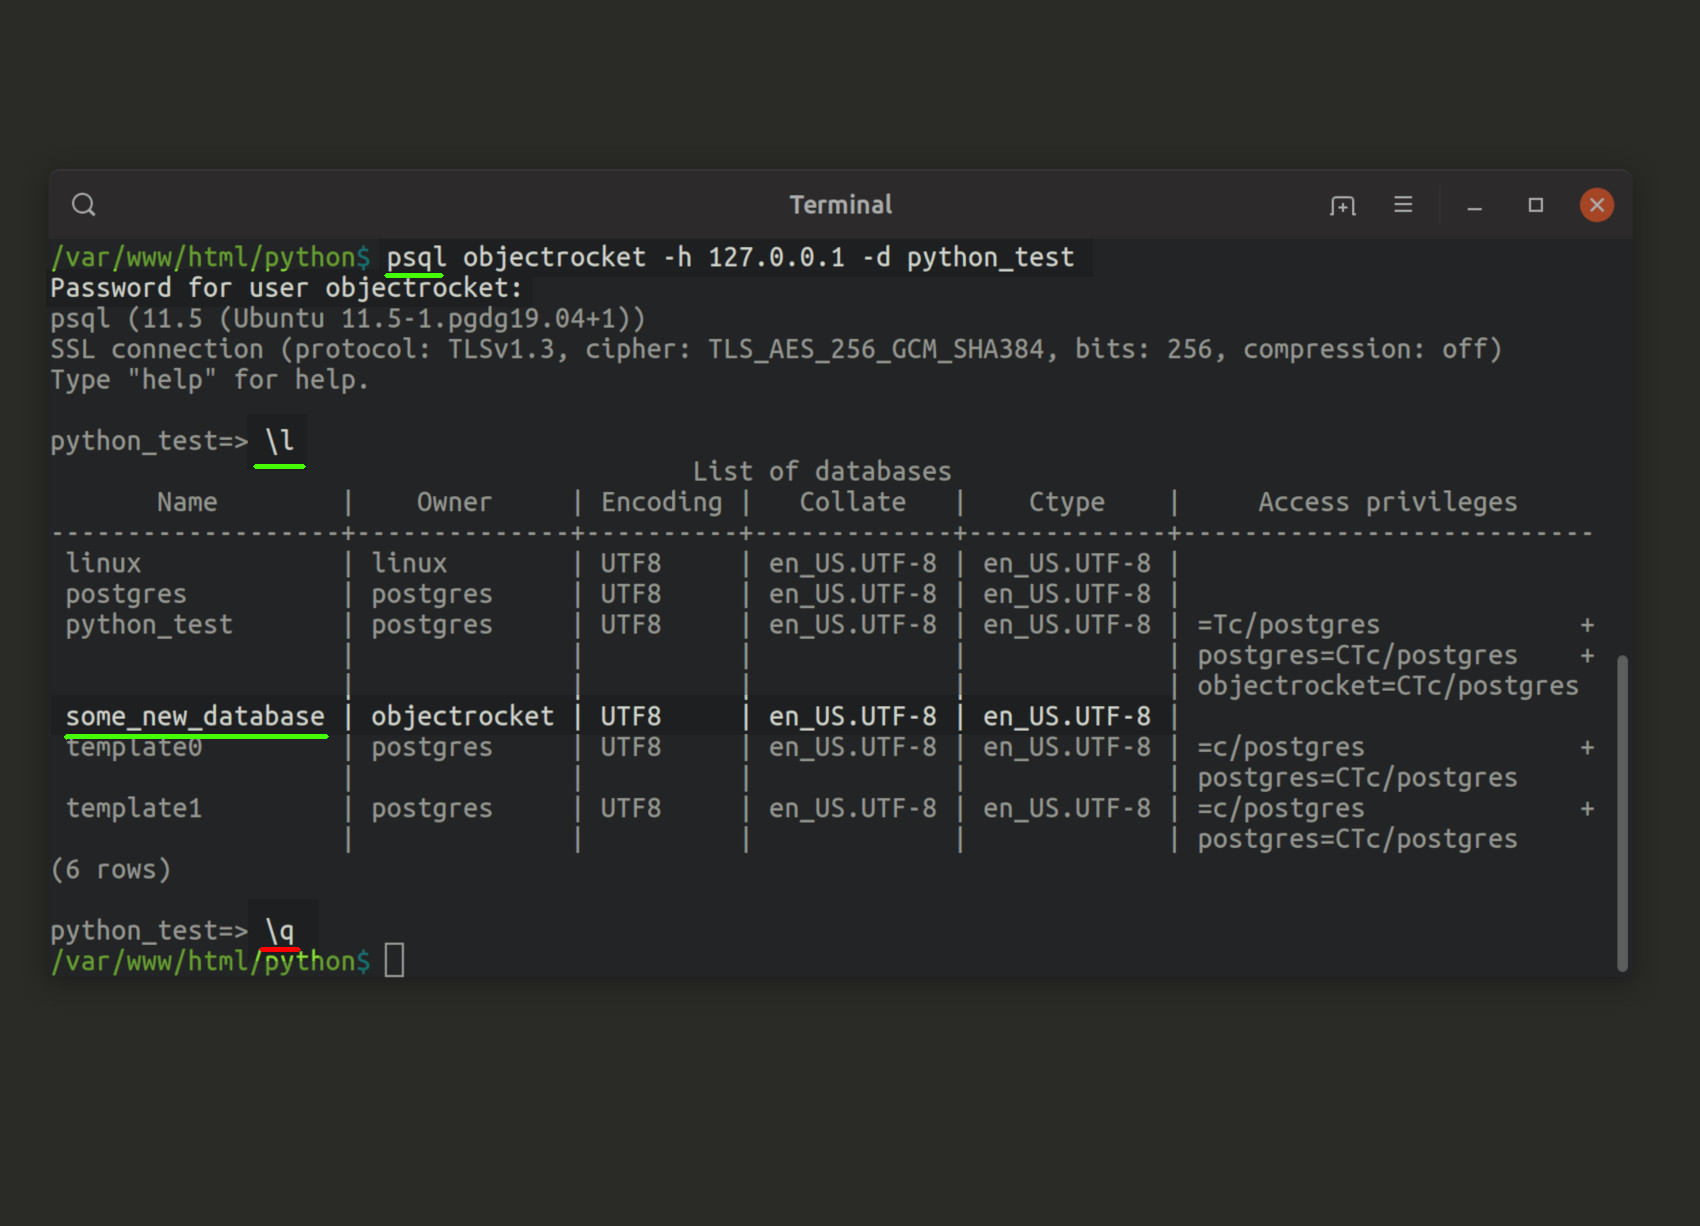 Screenshot of psql terminal command line listing all PostgreSQL databases